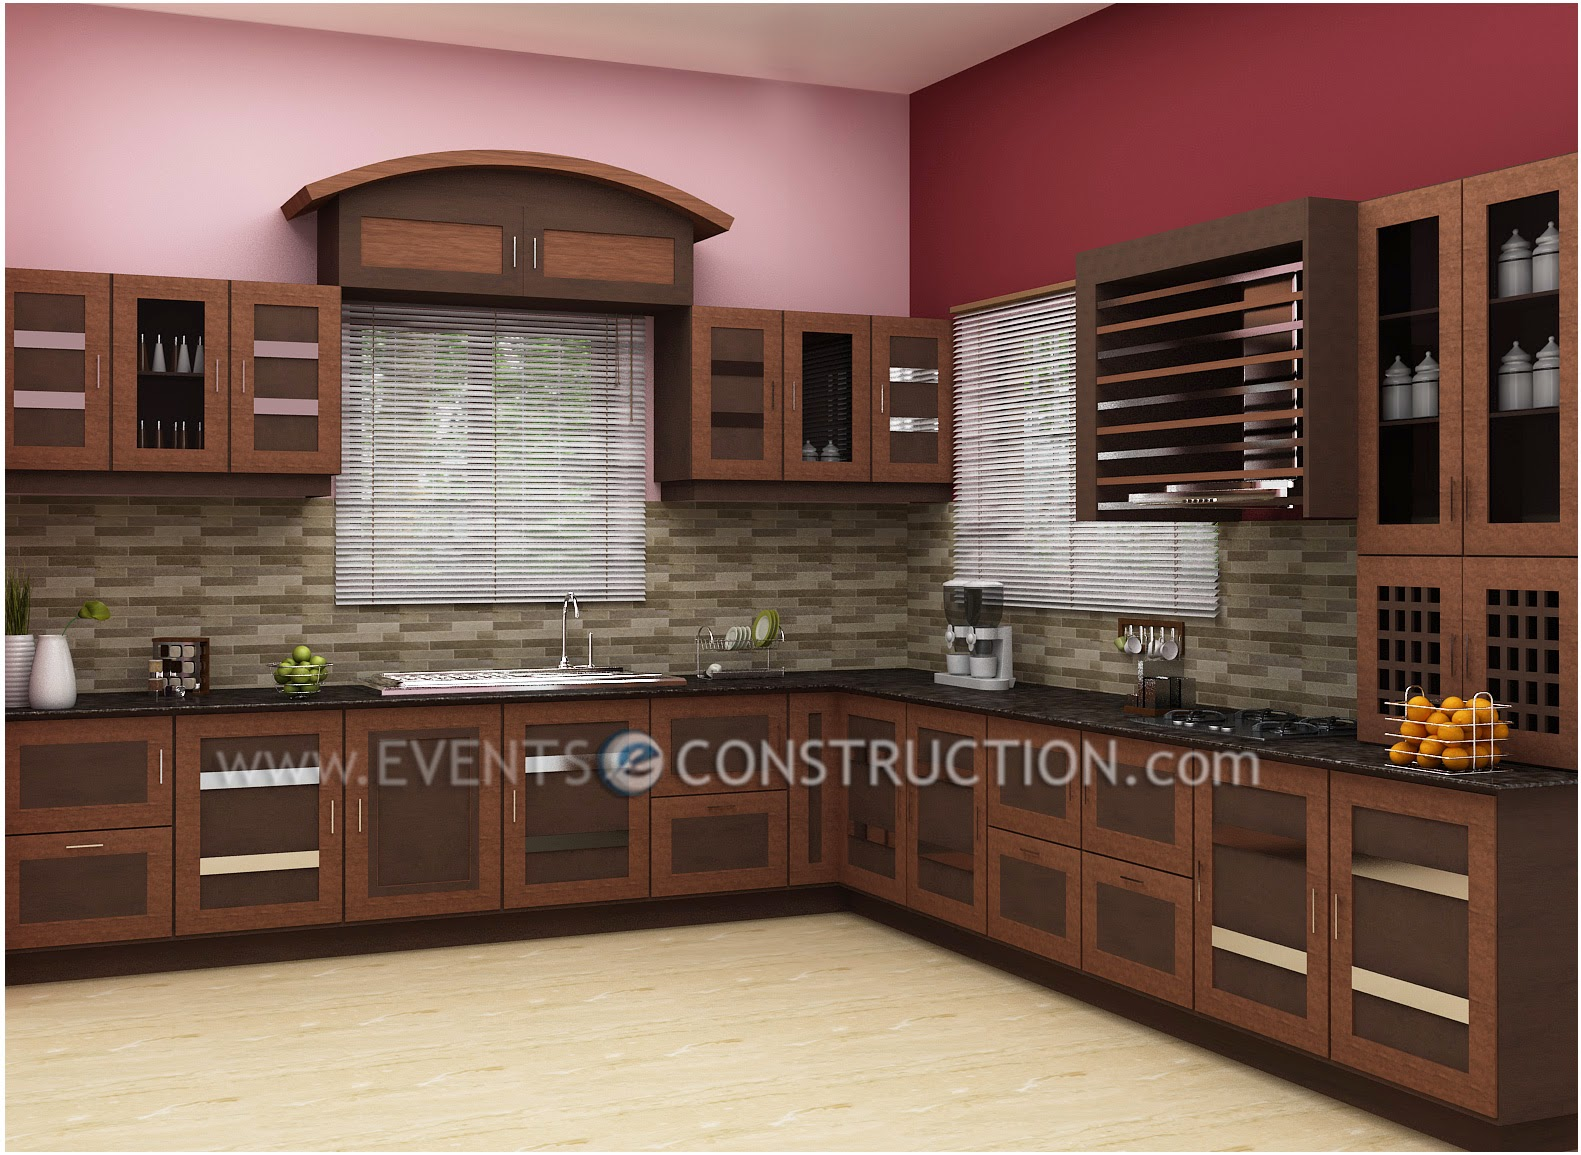 kitchen design kerala houses evens construction pvt ltd march 2014 495